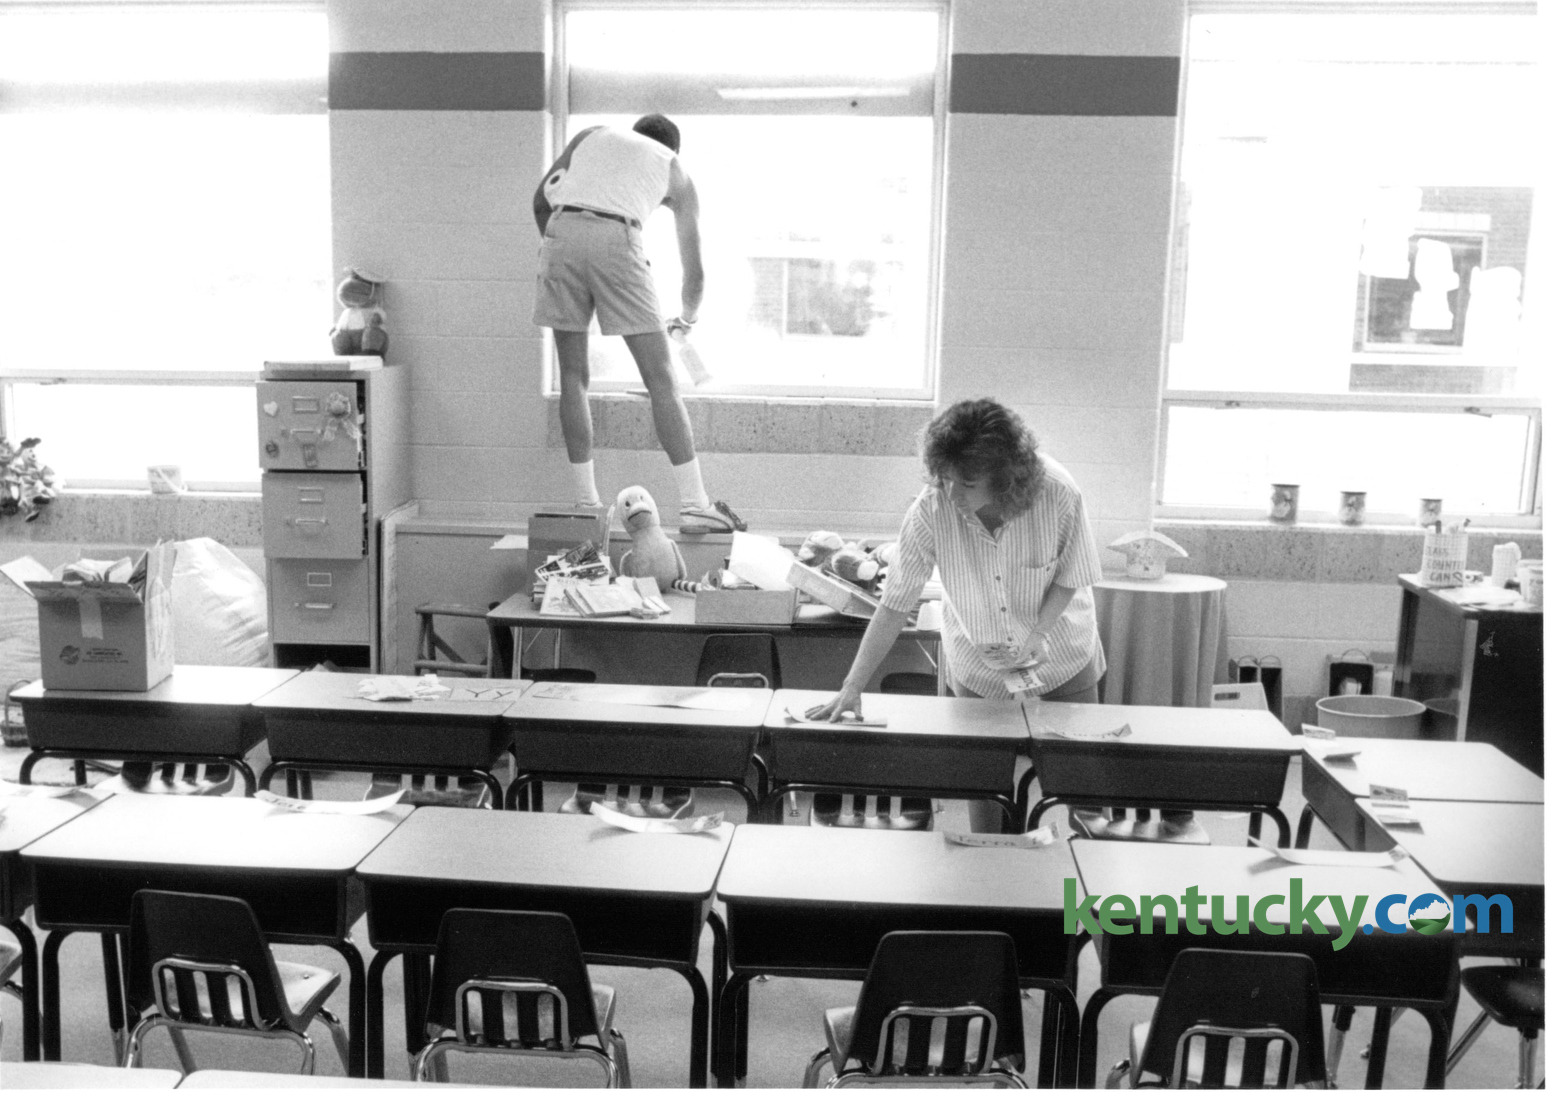 desks for the first day of school at Squires Elementary School ...